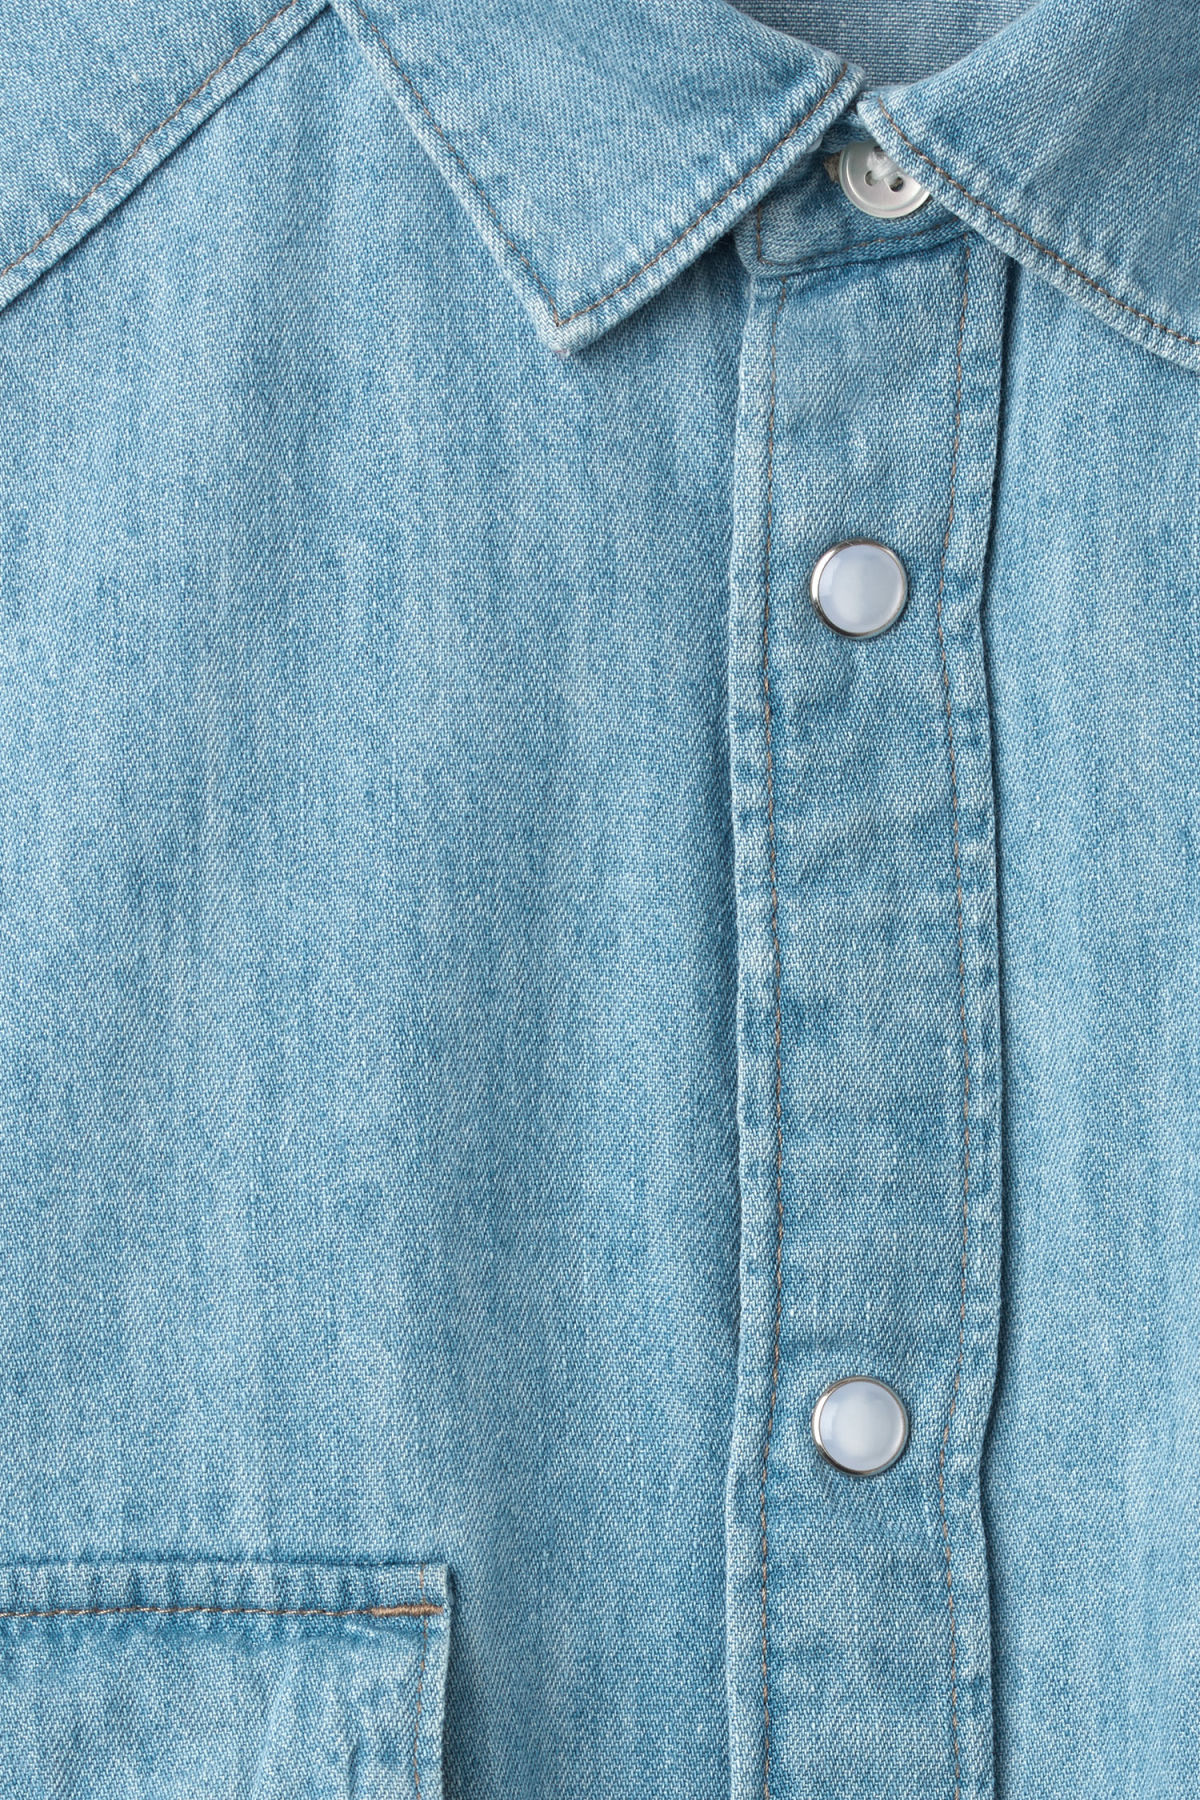 Detailed image of Weekday coy blue shirt  in blue